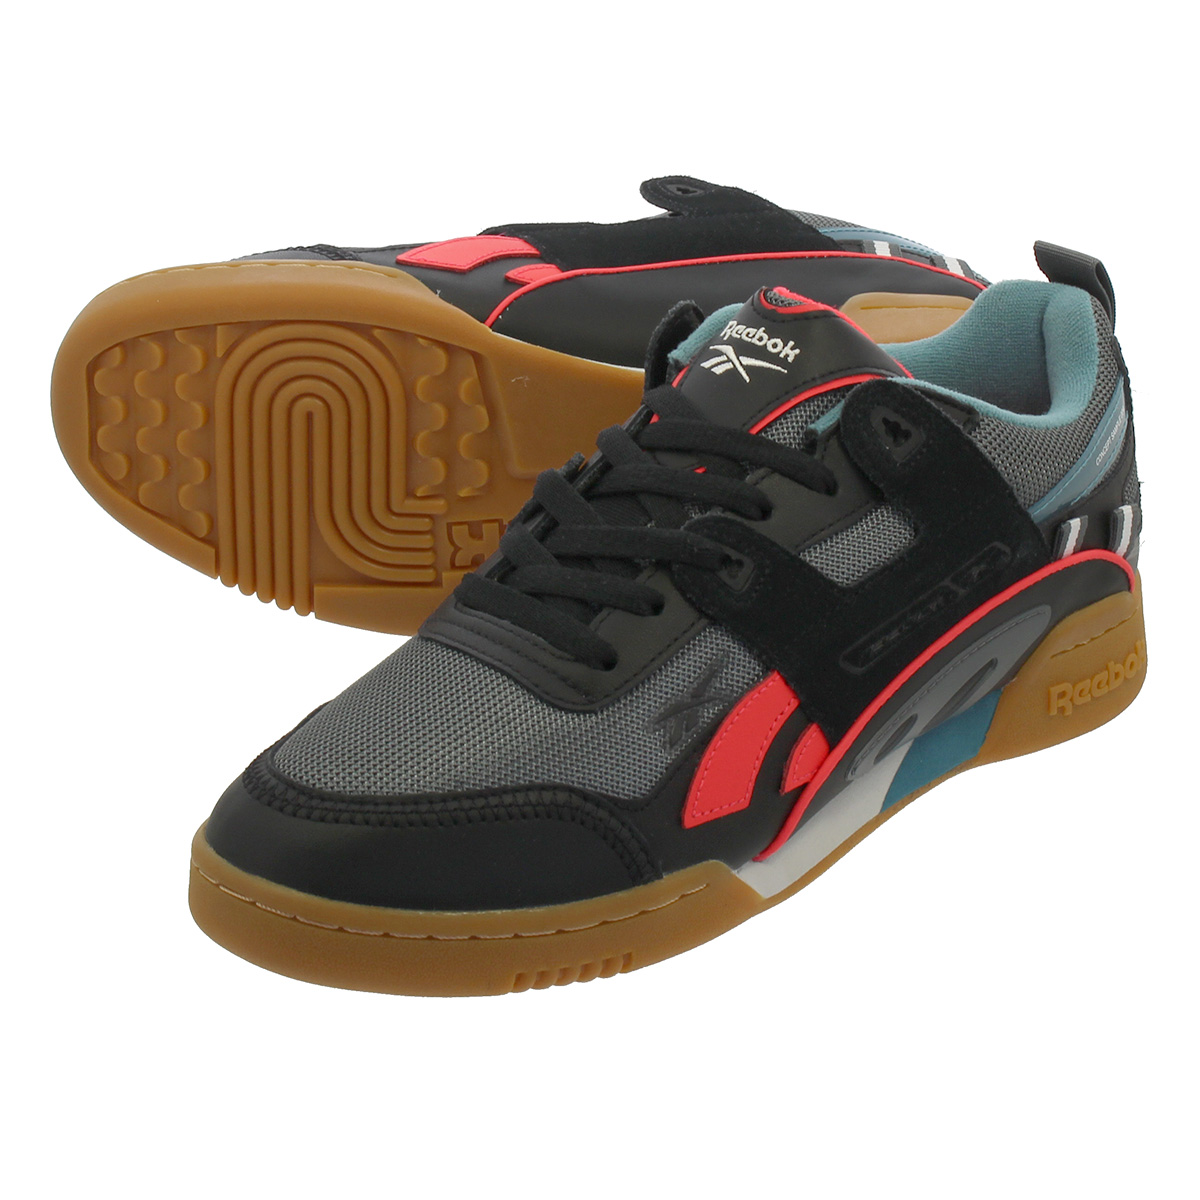 Reebok WORKOUT PLUS ATI 90'S リーボック ワークアウト プラス オルター ザ アイコン 90'S BLACK/ALLOY/NEON RED/MINERAL MIST dv6282